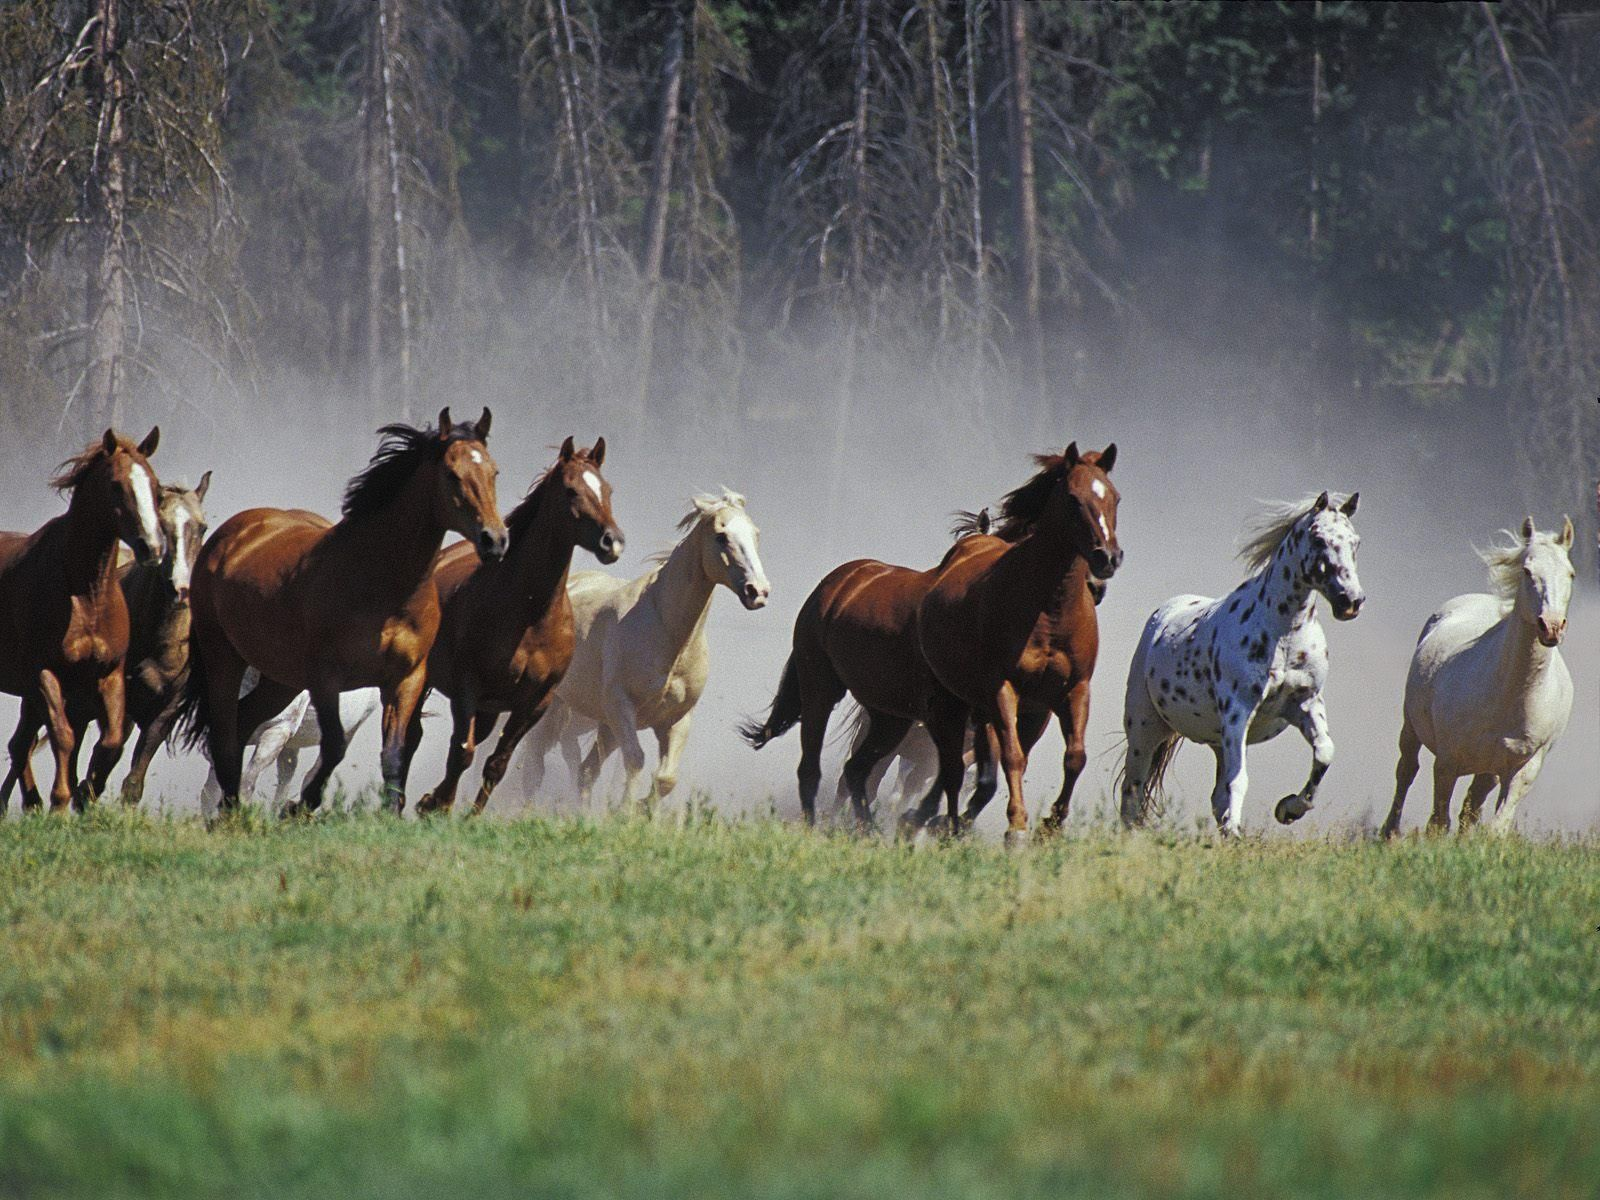 Wild Horses Wallpapers Top Free Wild Horses Backgrounds